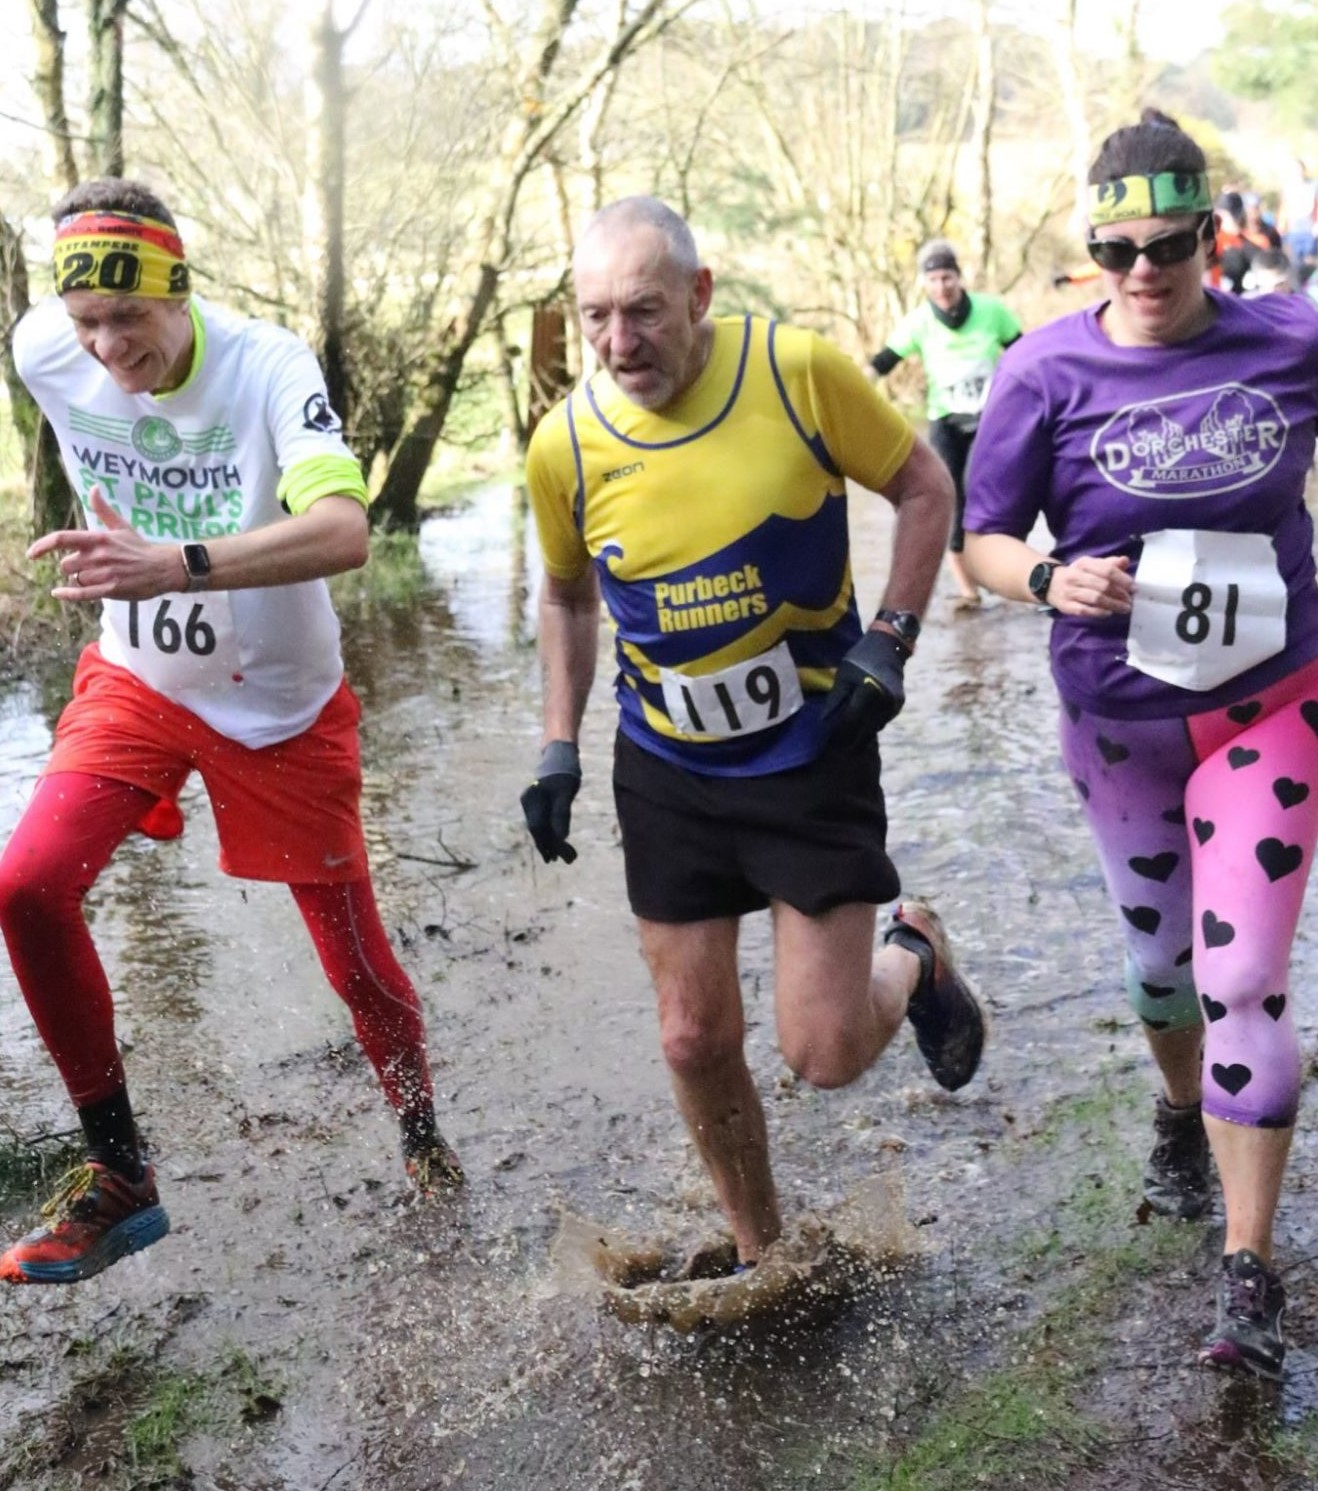 Martin Grimsdale competing in the Sika Trail 10k